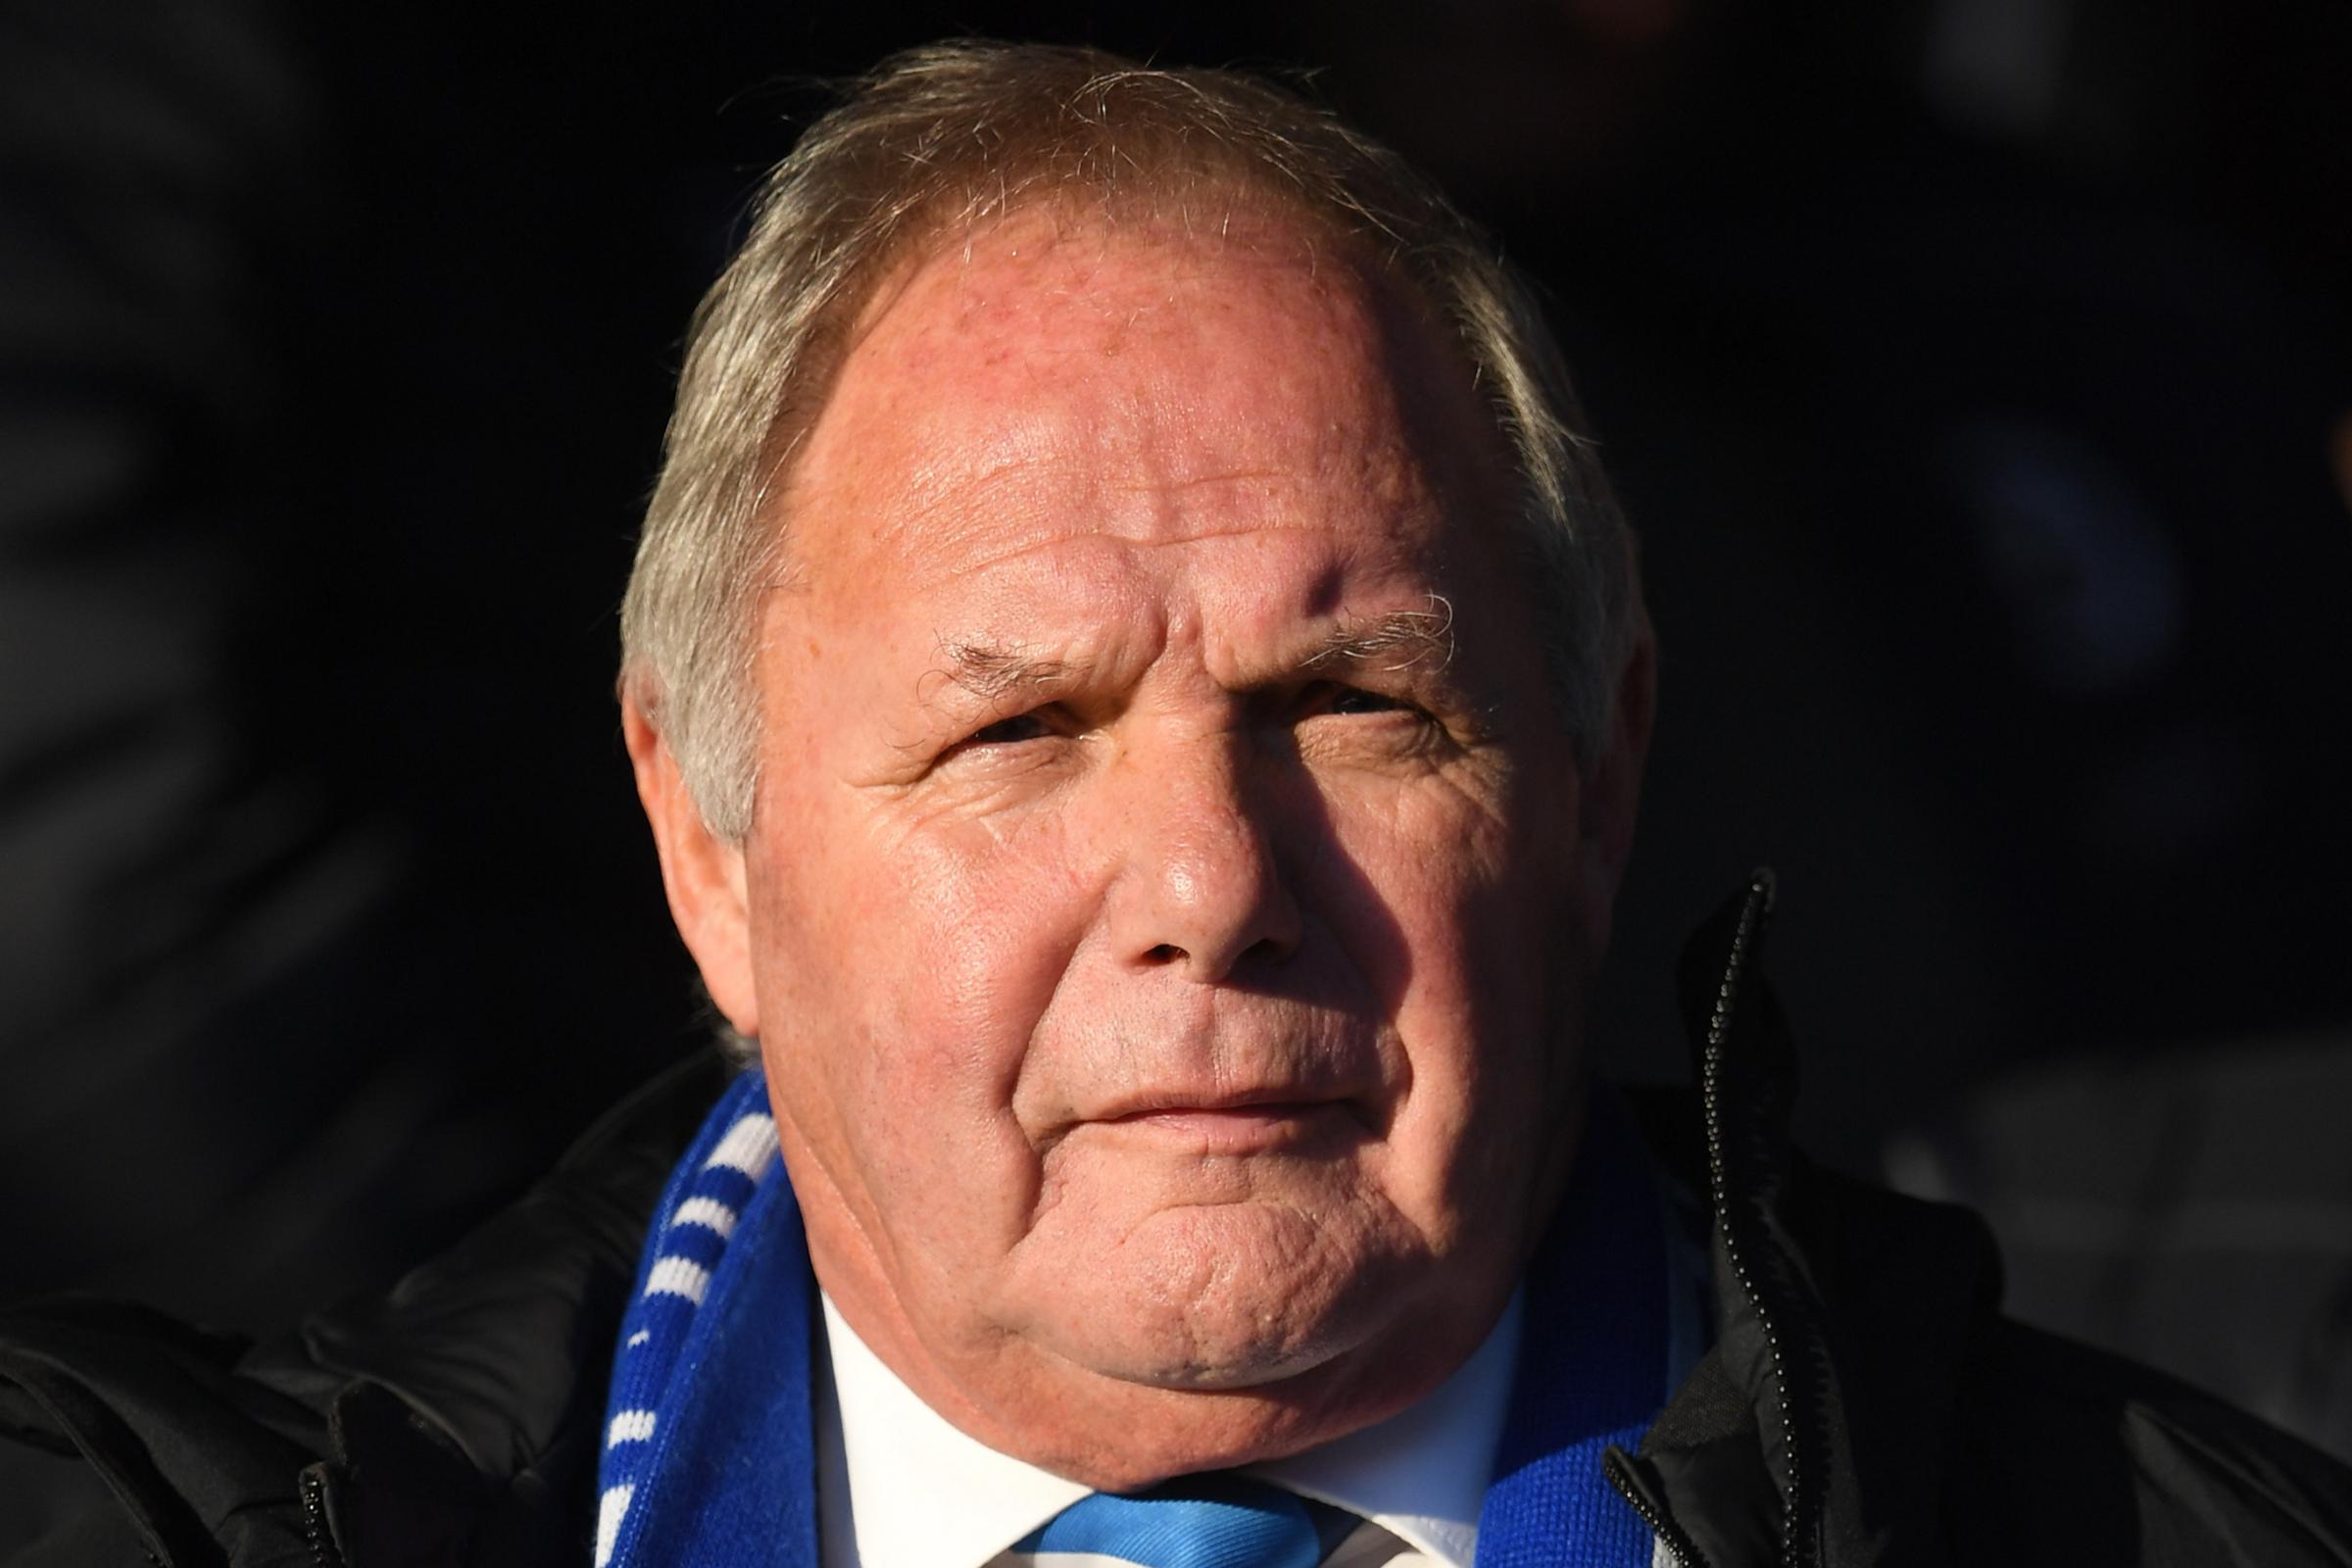 Peterborough United's Barry Fry has been charged by the FA